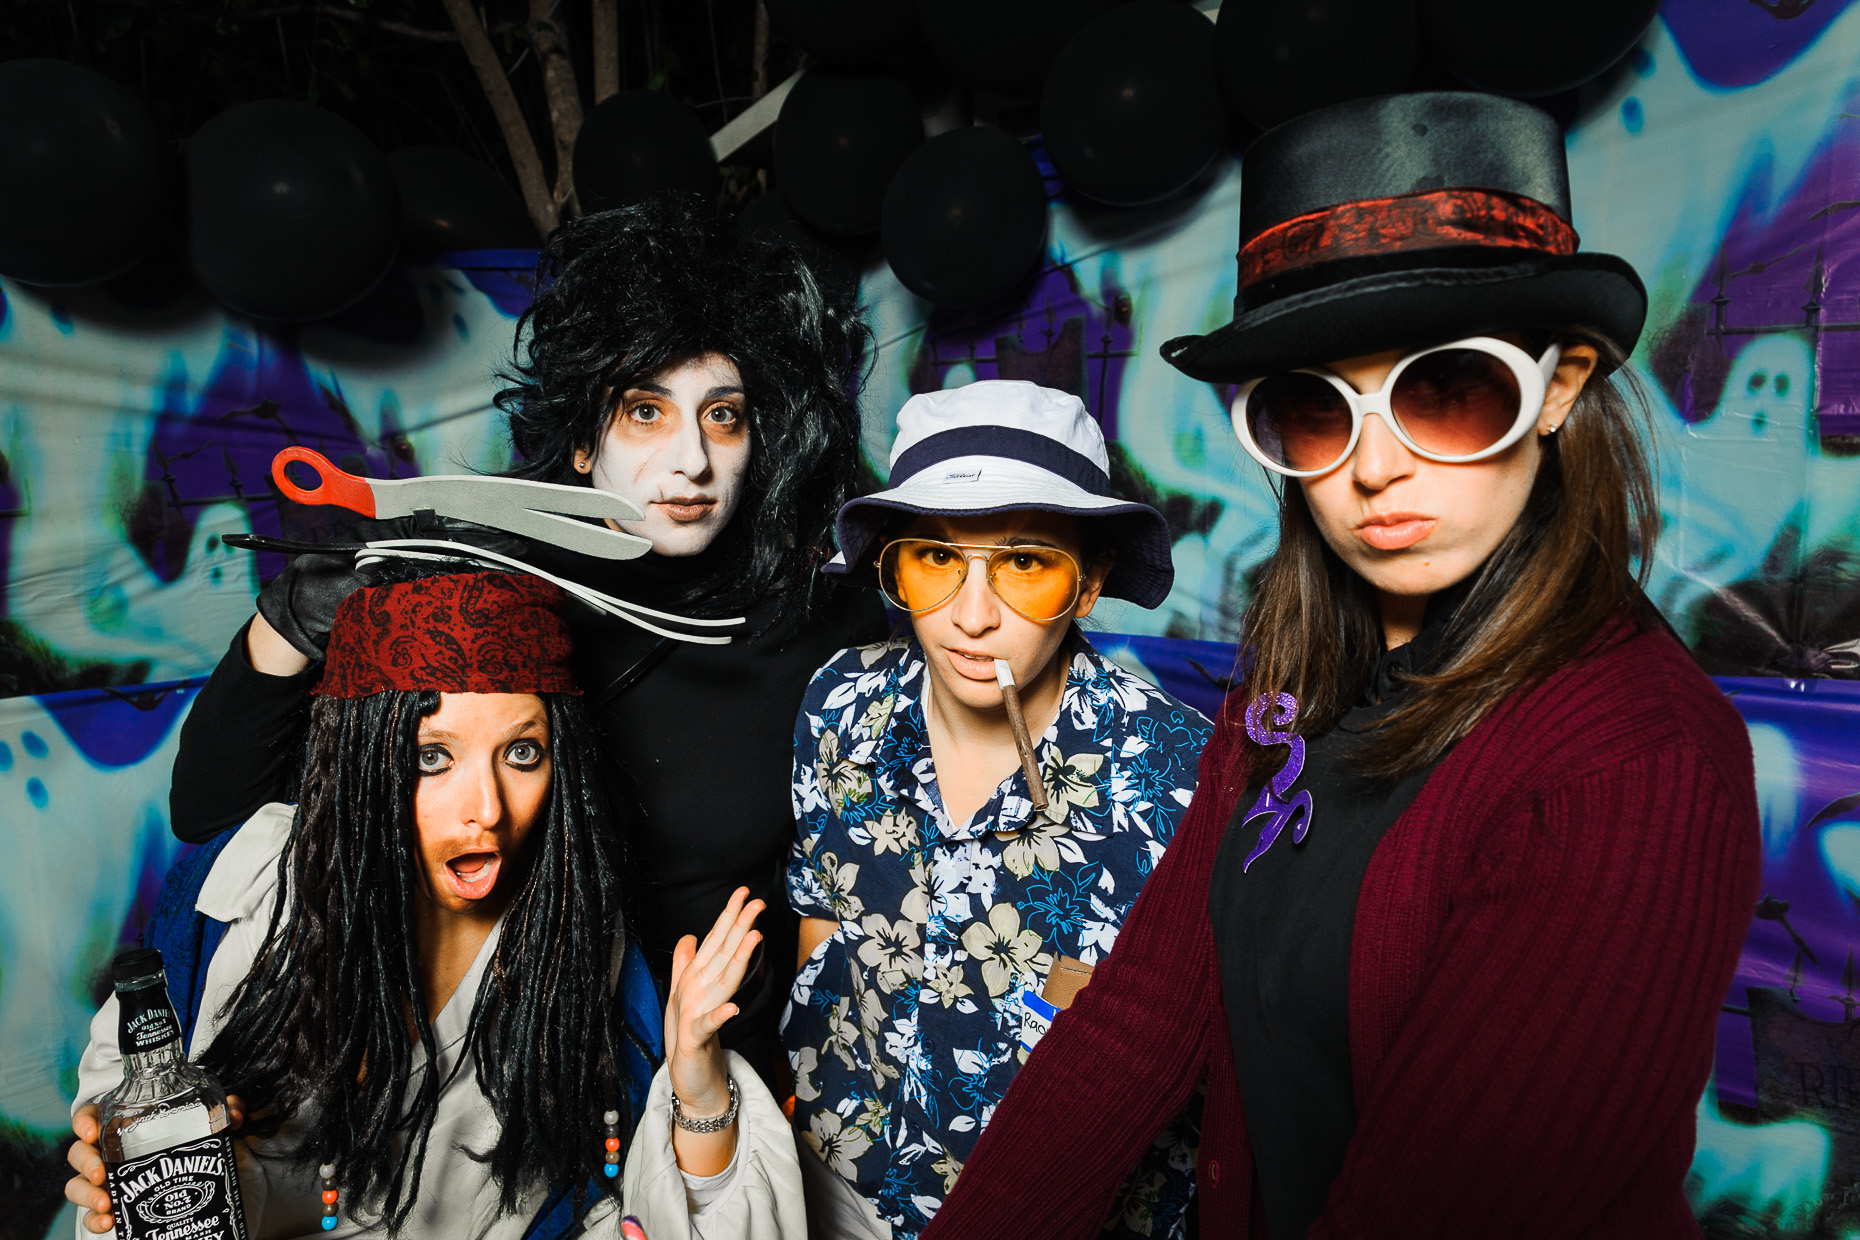 Photo-booth-Halloween-Austin-Event-Commercial-Photographer-Depp.jpg